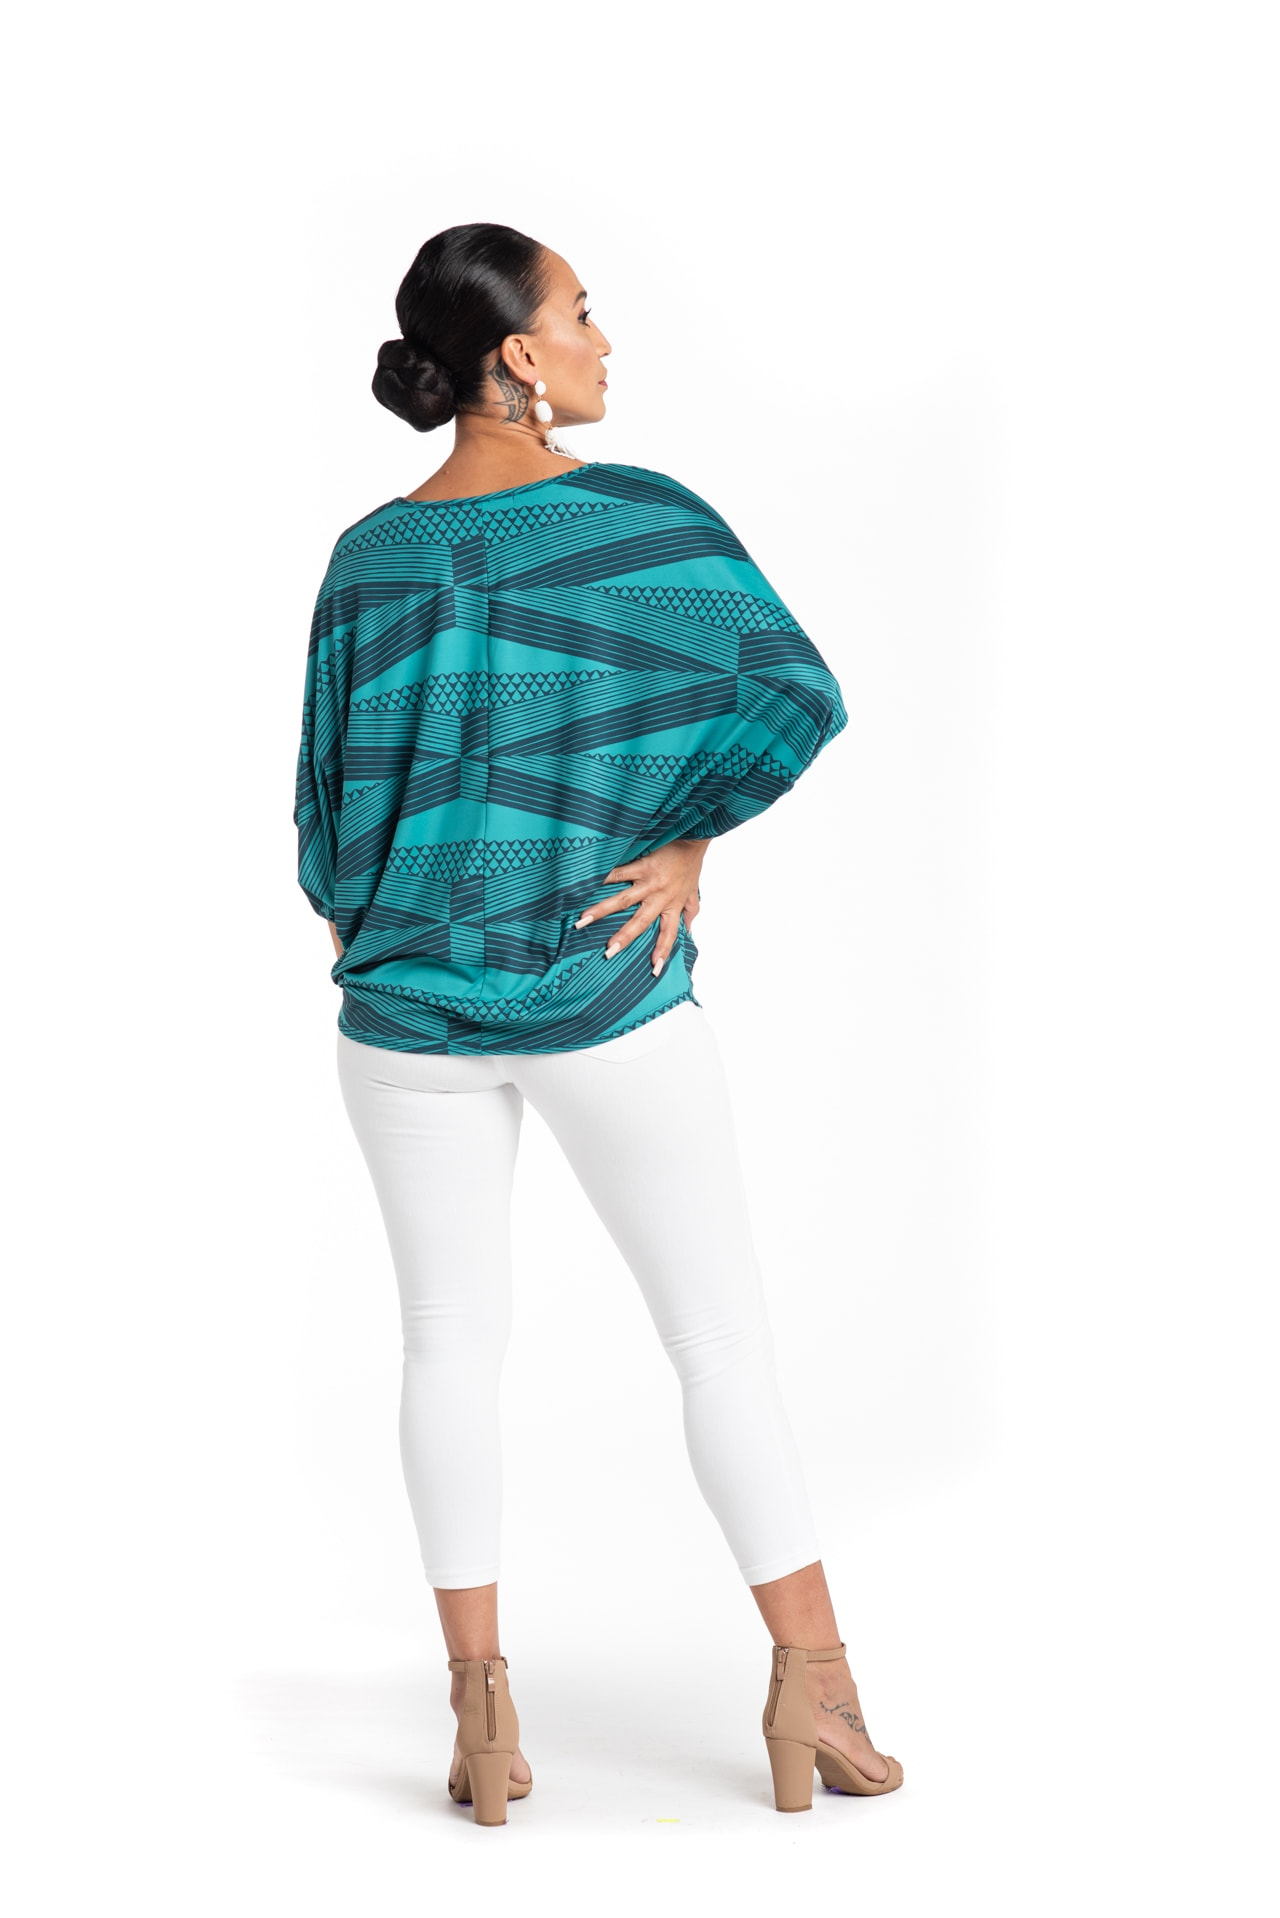 Model wearing Mahalo Nui Shirt in Blue - Back View